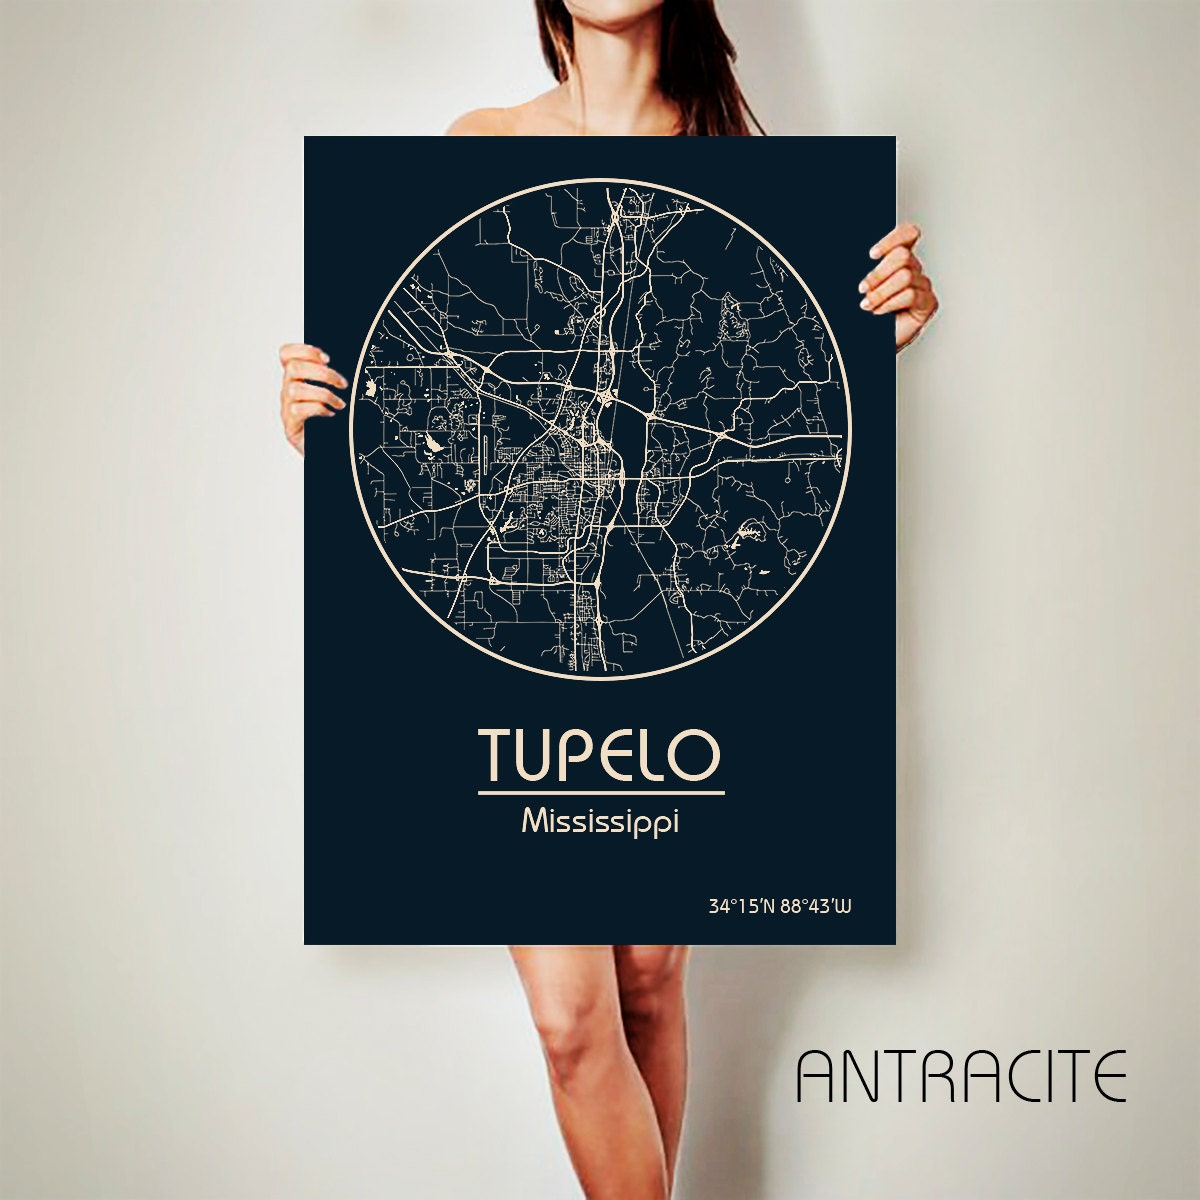 tupelo mississippi canvas map tupelo mississippi poster city etsy. Black Bedroom Furniture Sets. Home Design Ideas